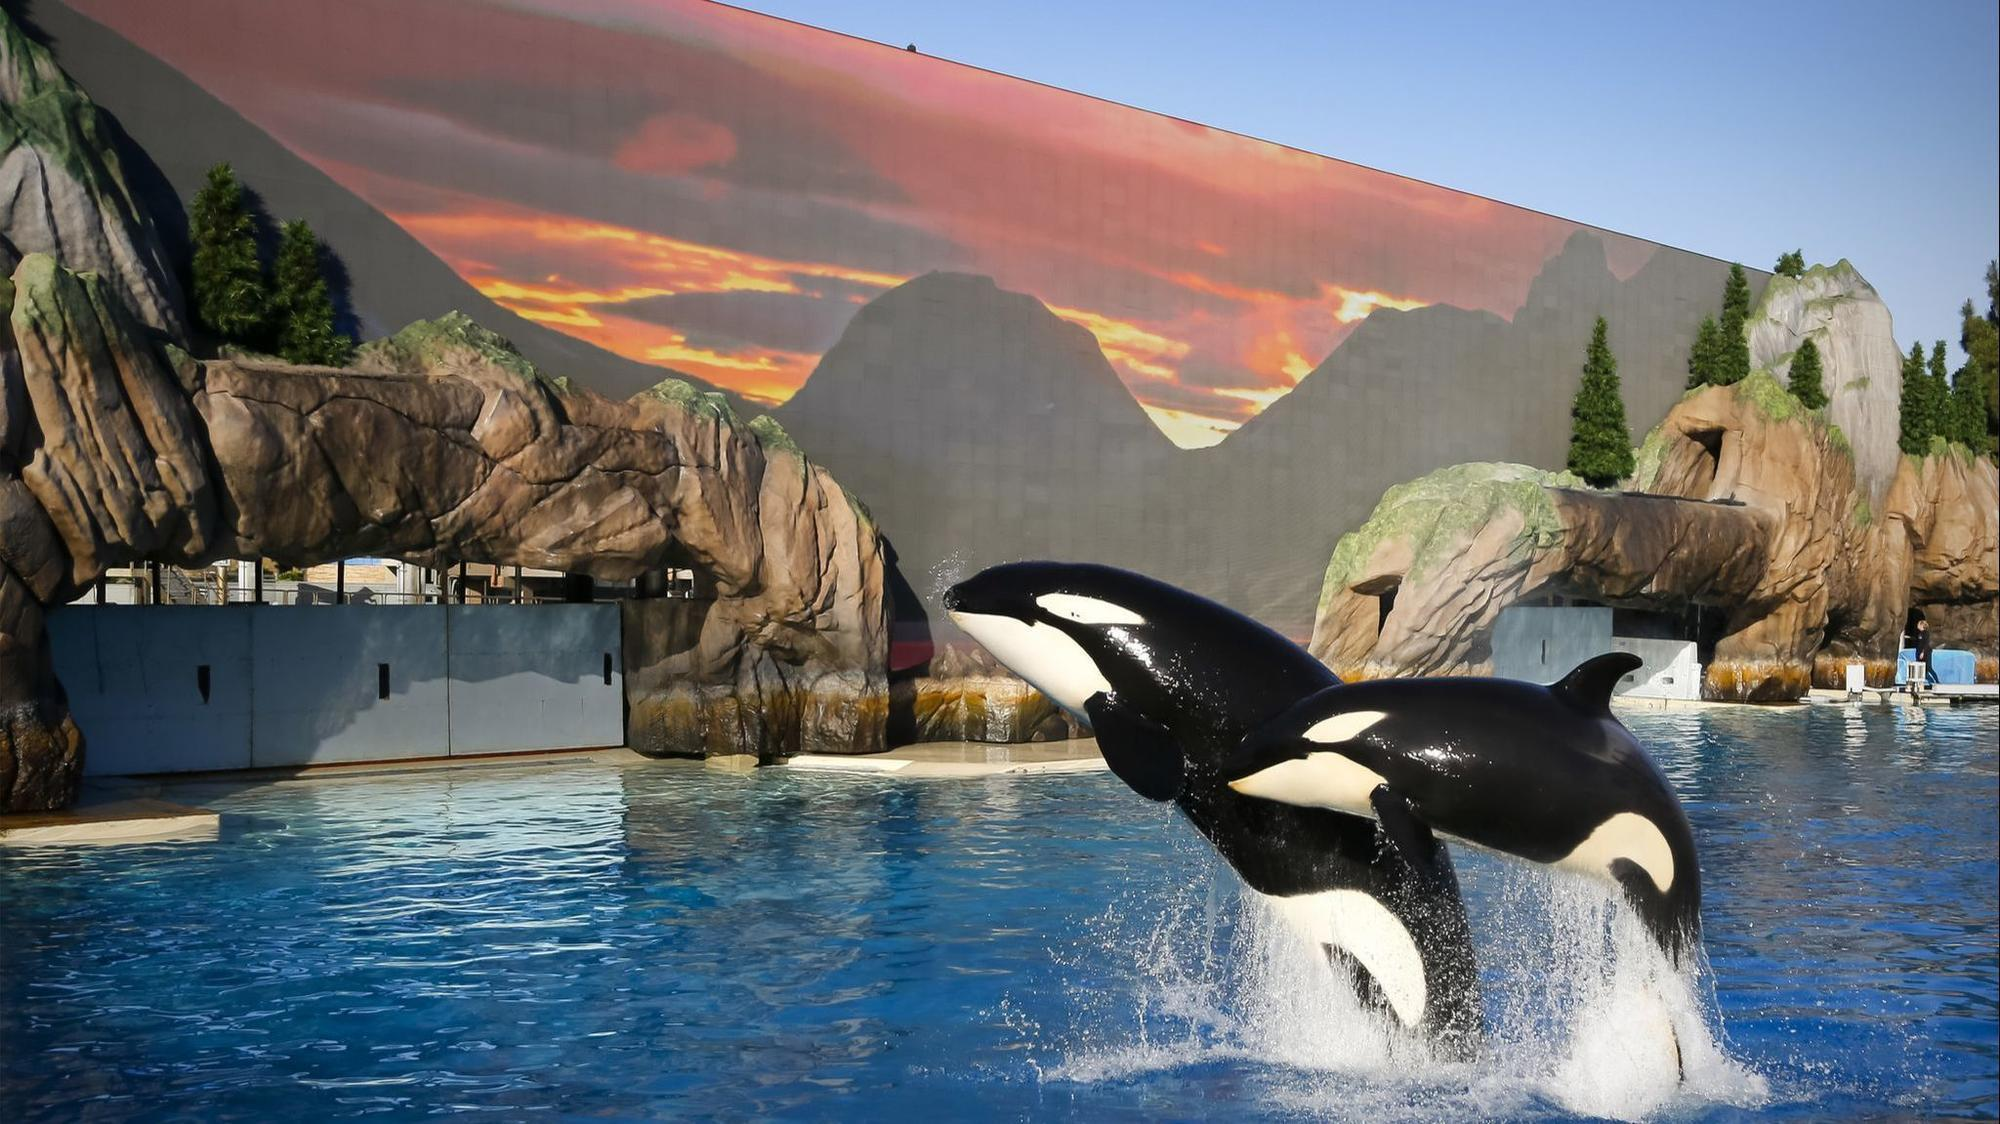 SeaWorld says no to straws, plastic bags in its parks